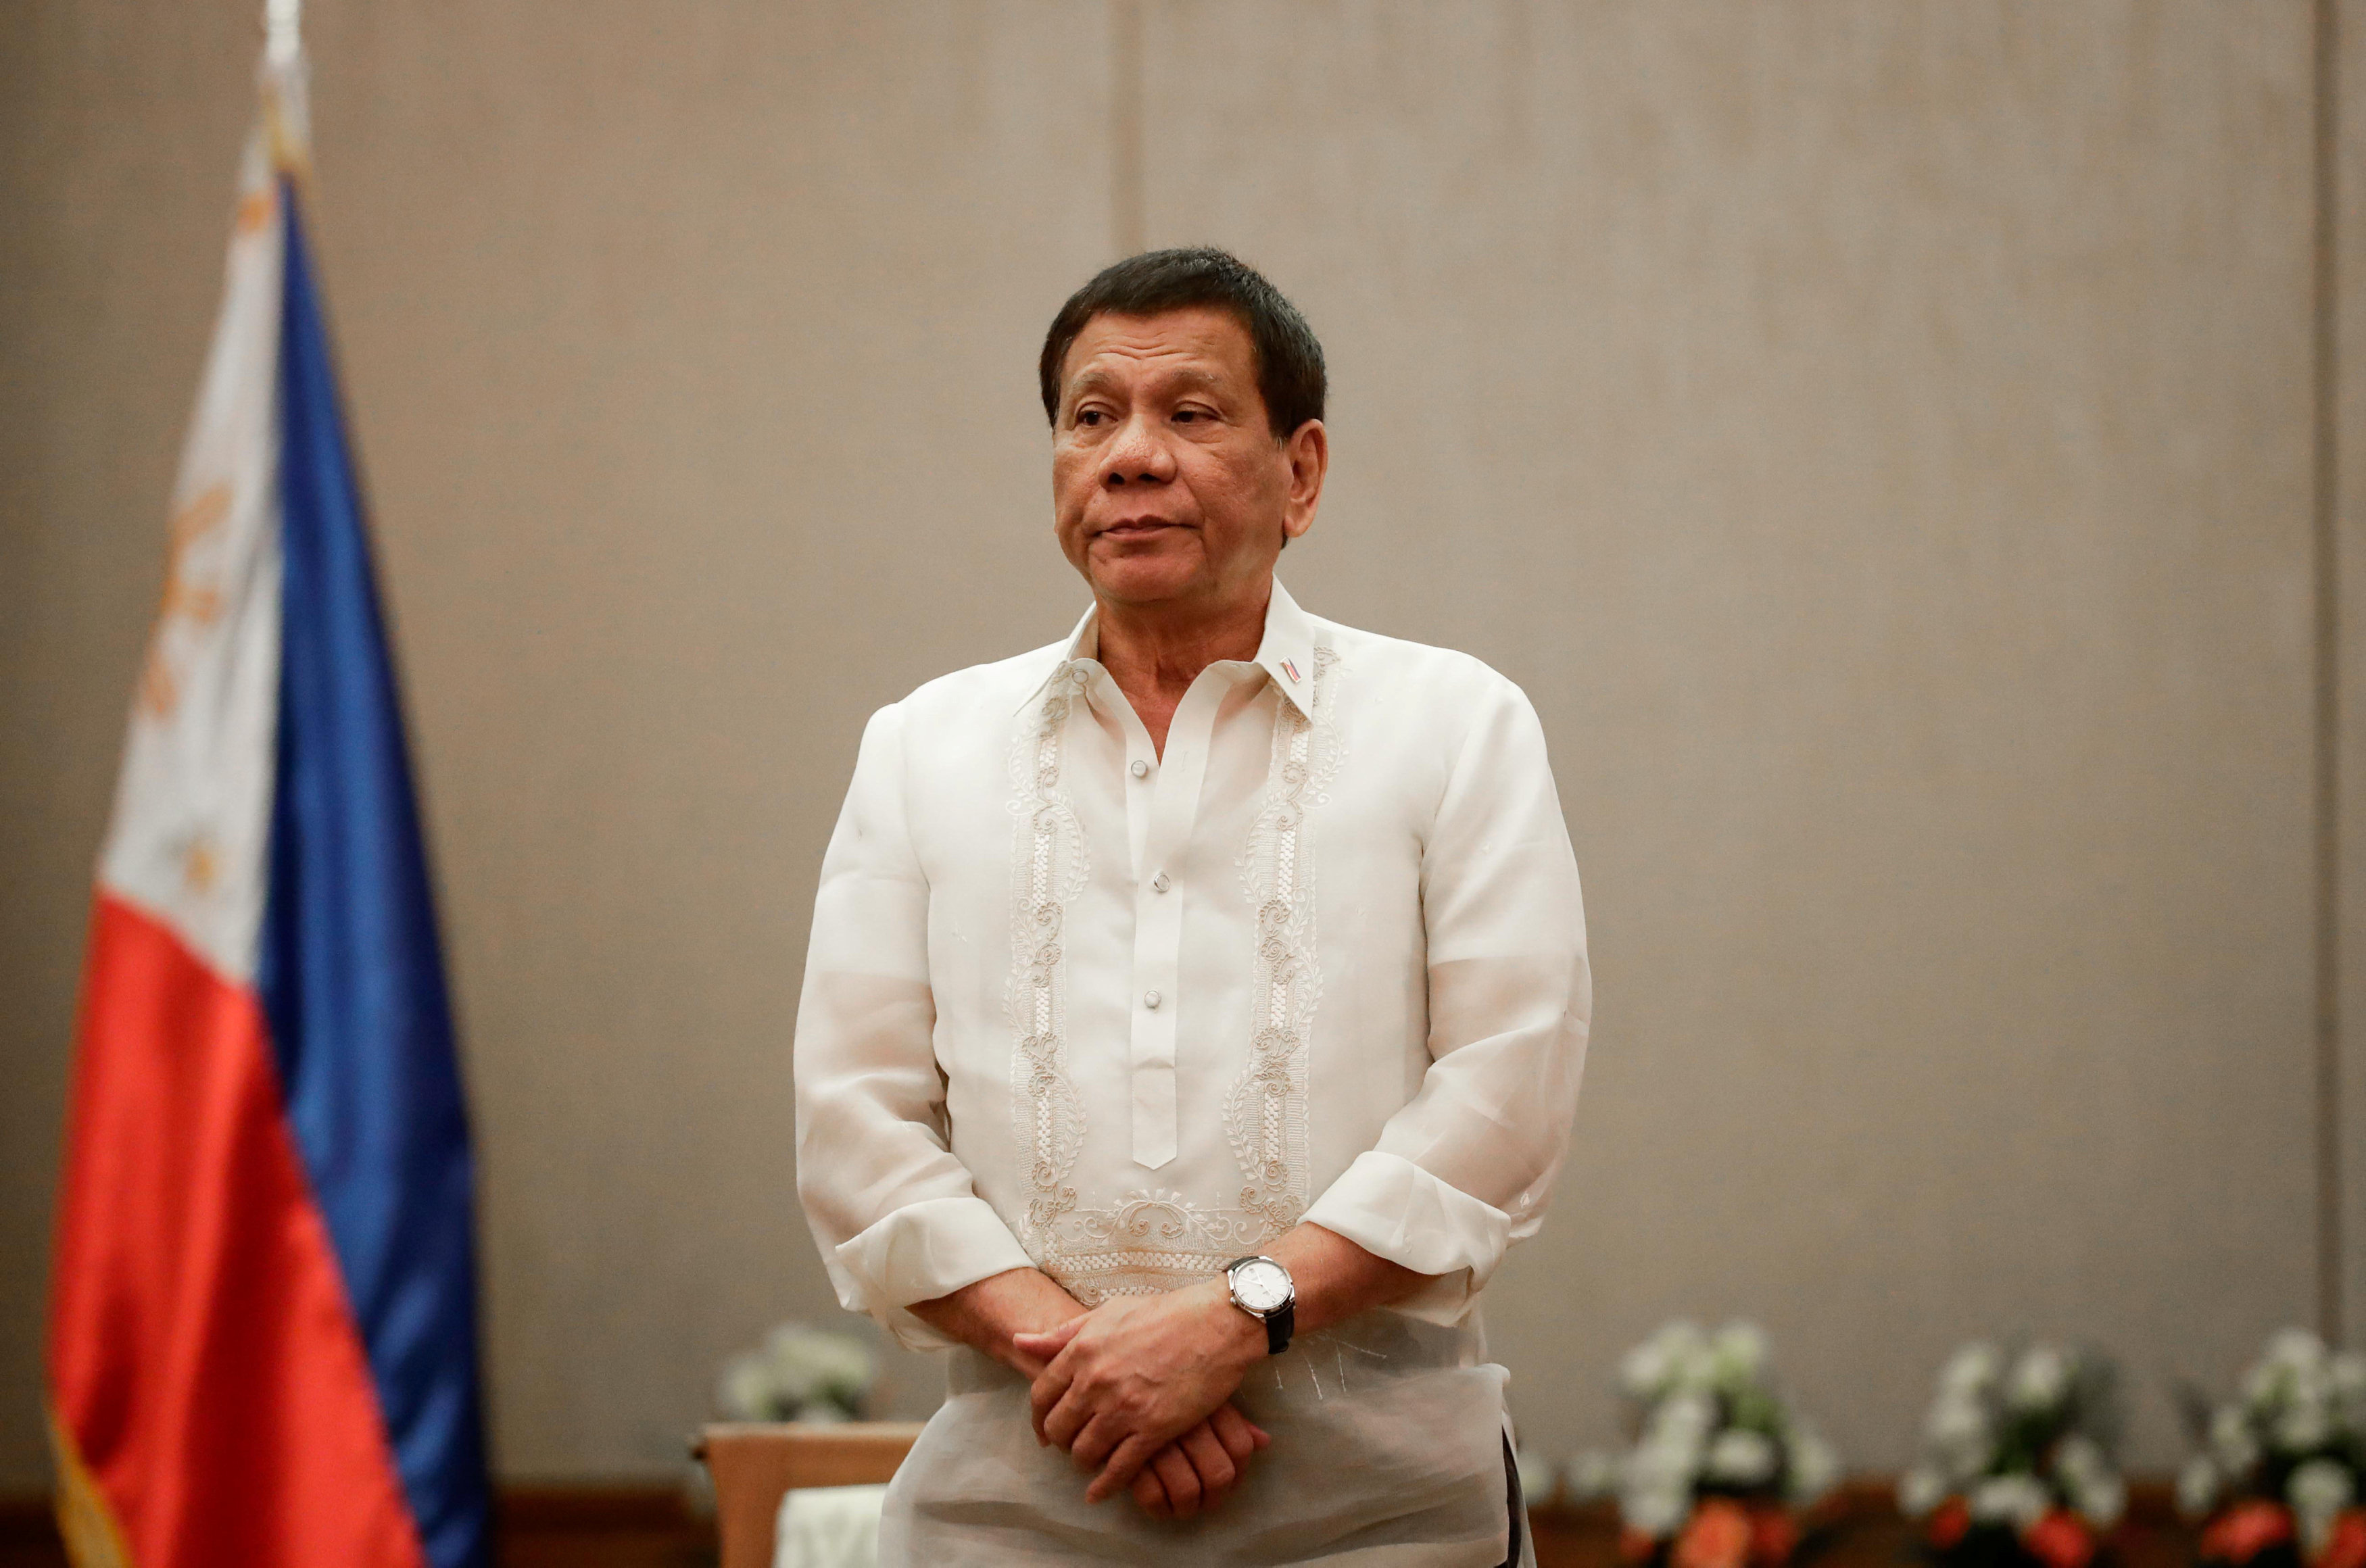 Philippines 'President Rodrigo Duterte stands at attention during a courtesy call with the Association of Southeast Asian Nations (ASEAN) Economic Ministers in Manila, Philippines, September 6, 2017. REUTERS/Pool/Mark Cristino